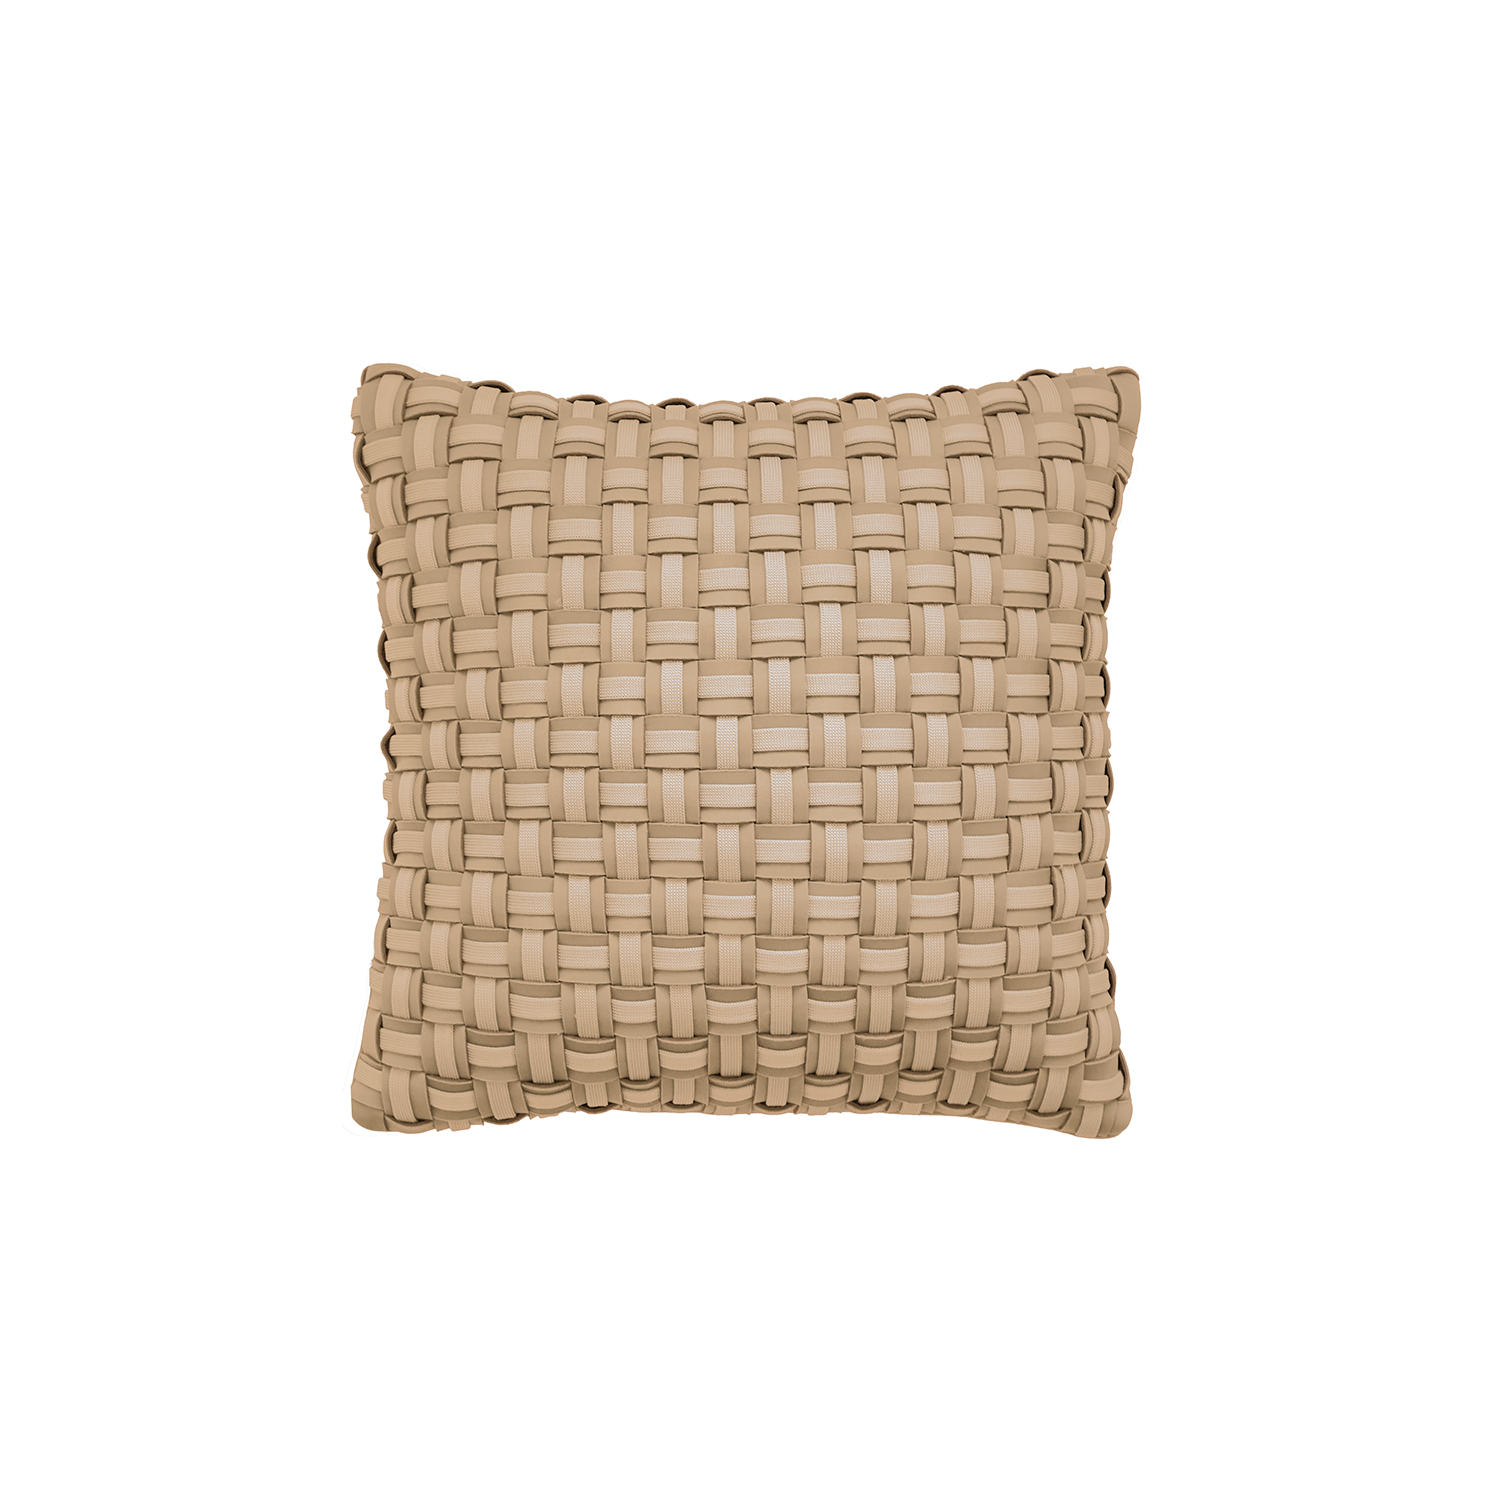 Mosaico Duplo Neo Cushion Square - The Mosaico Duplo Neo Cushion is carefully knitted within a trained community of women that found in their craft a way to provide for their families. The outdoor collection is made with synthetic fibres, resistant to weather exposure. The use of neoprene brings comfort and technology to the cushions.  The front panel is in neoprene combined with hand woven nautical cord, made in Brazil.  The inner cushion is in Hollow Fibre, made in the UK.  Please enquire for more information and see colour chart for reference.  | Matter of Stuff